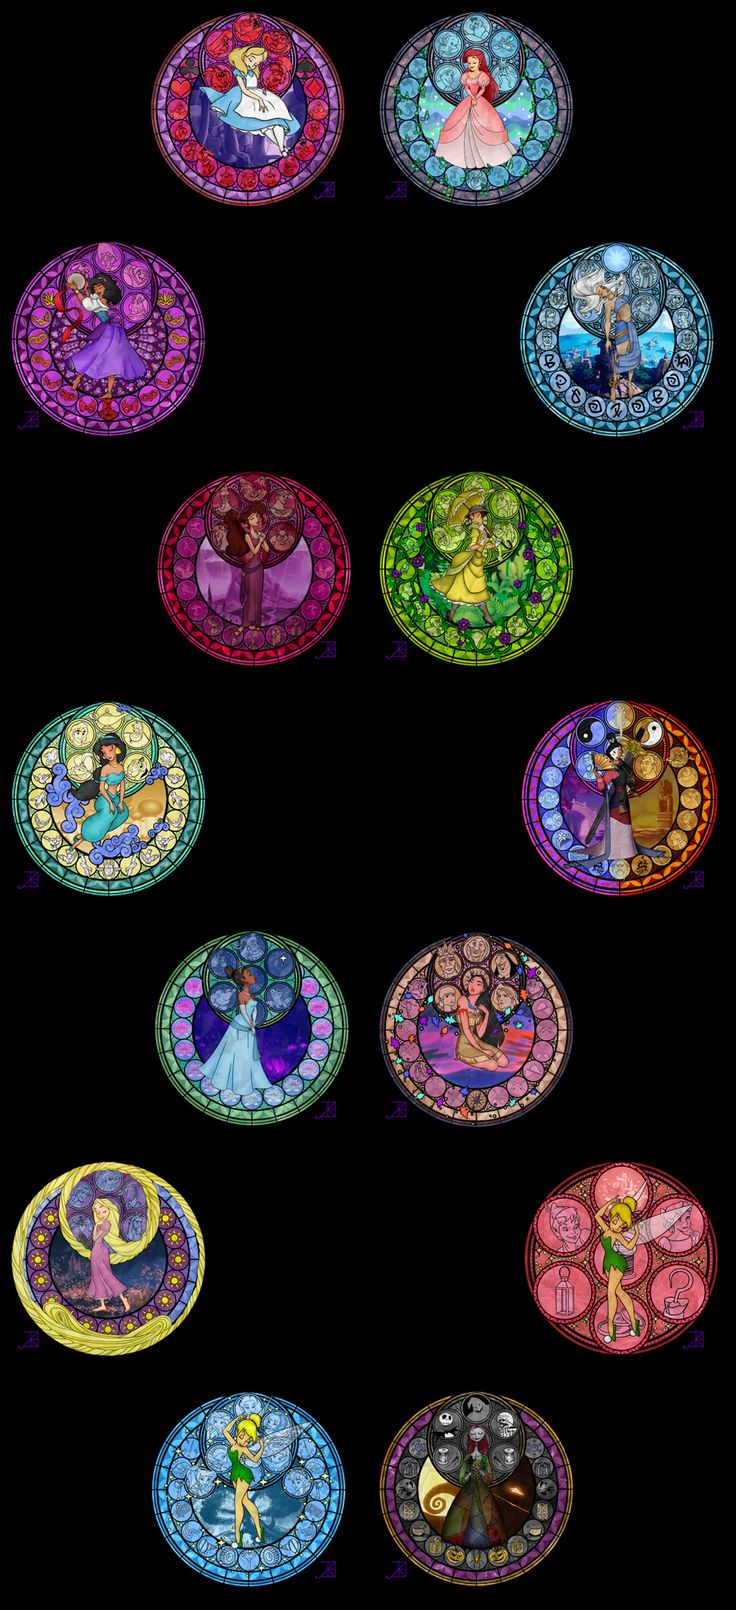 Disney Stained Glass Art Wallpapers 31 Disney Princess